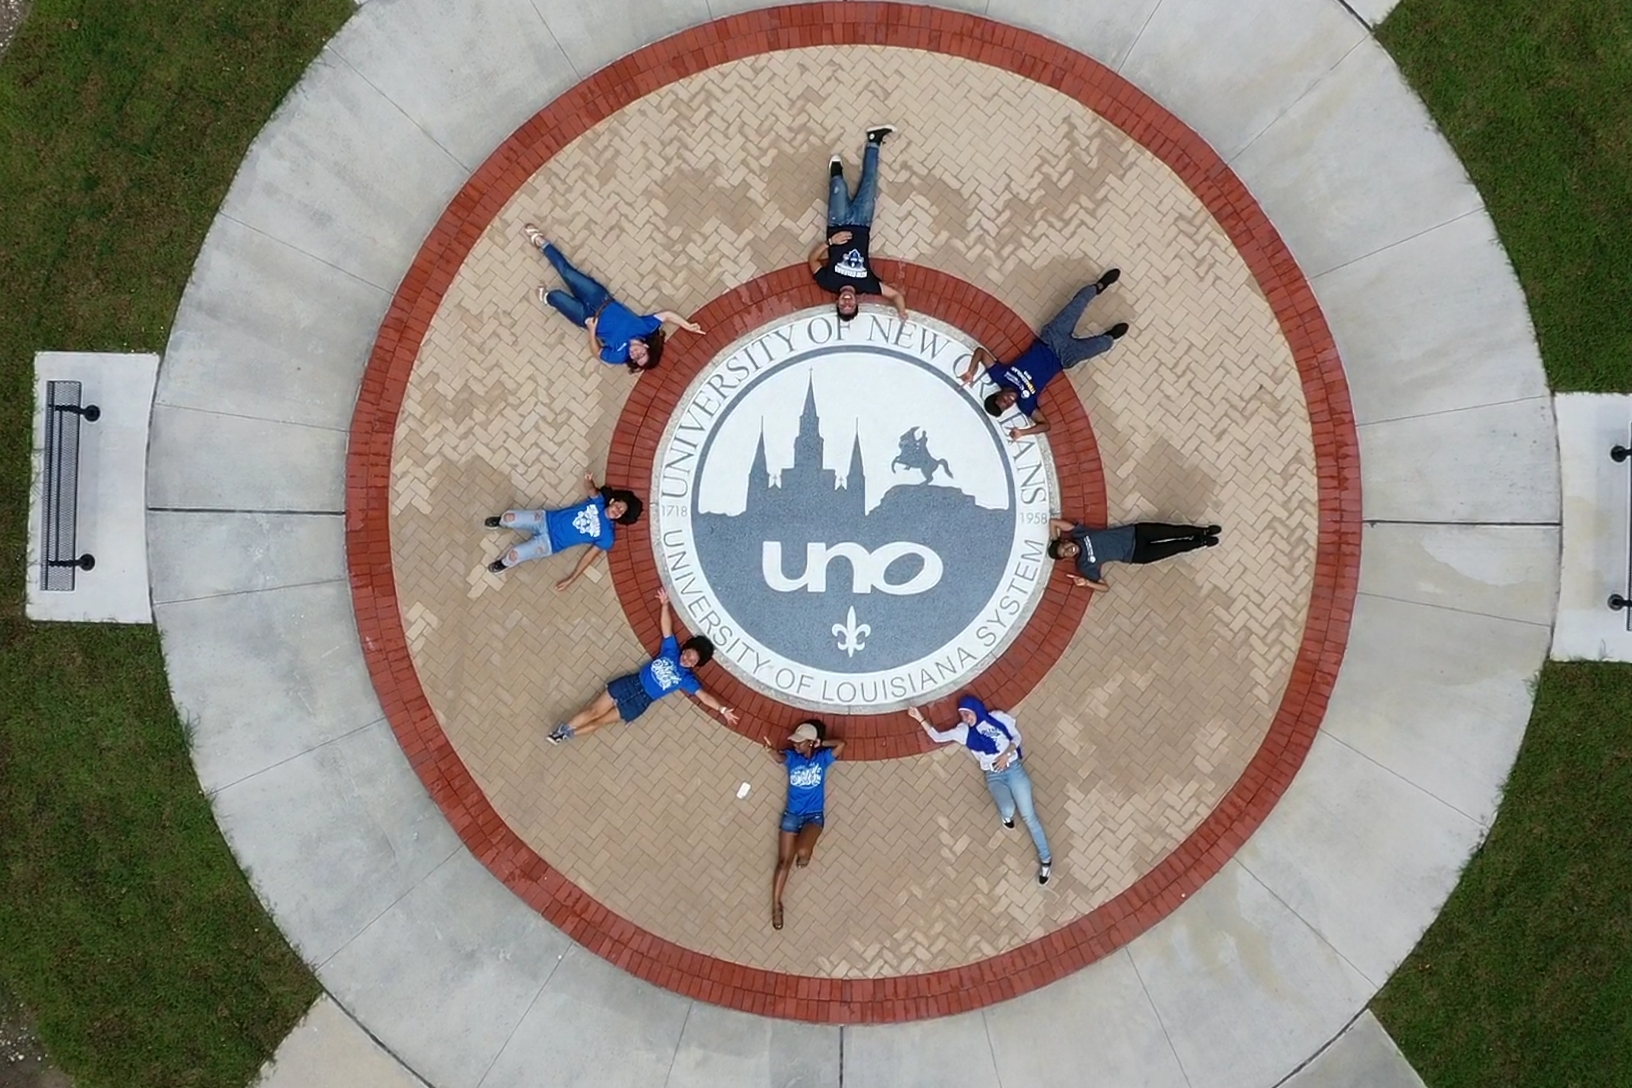 Aerial view uno students